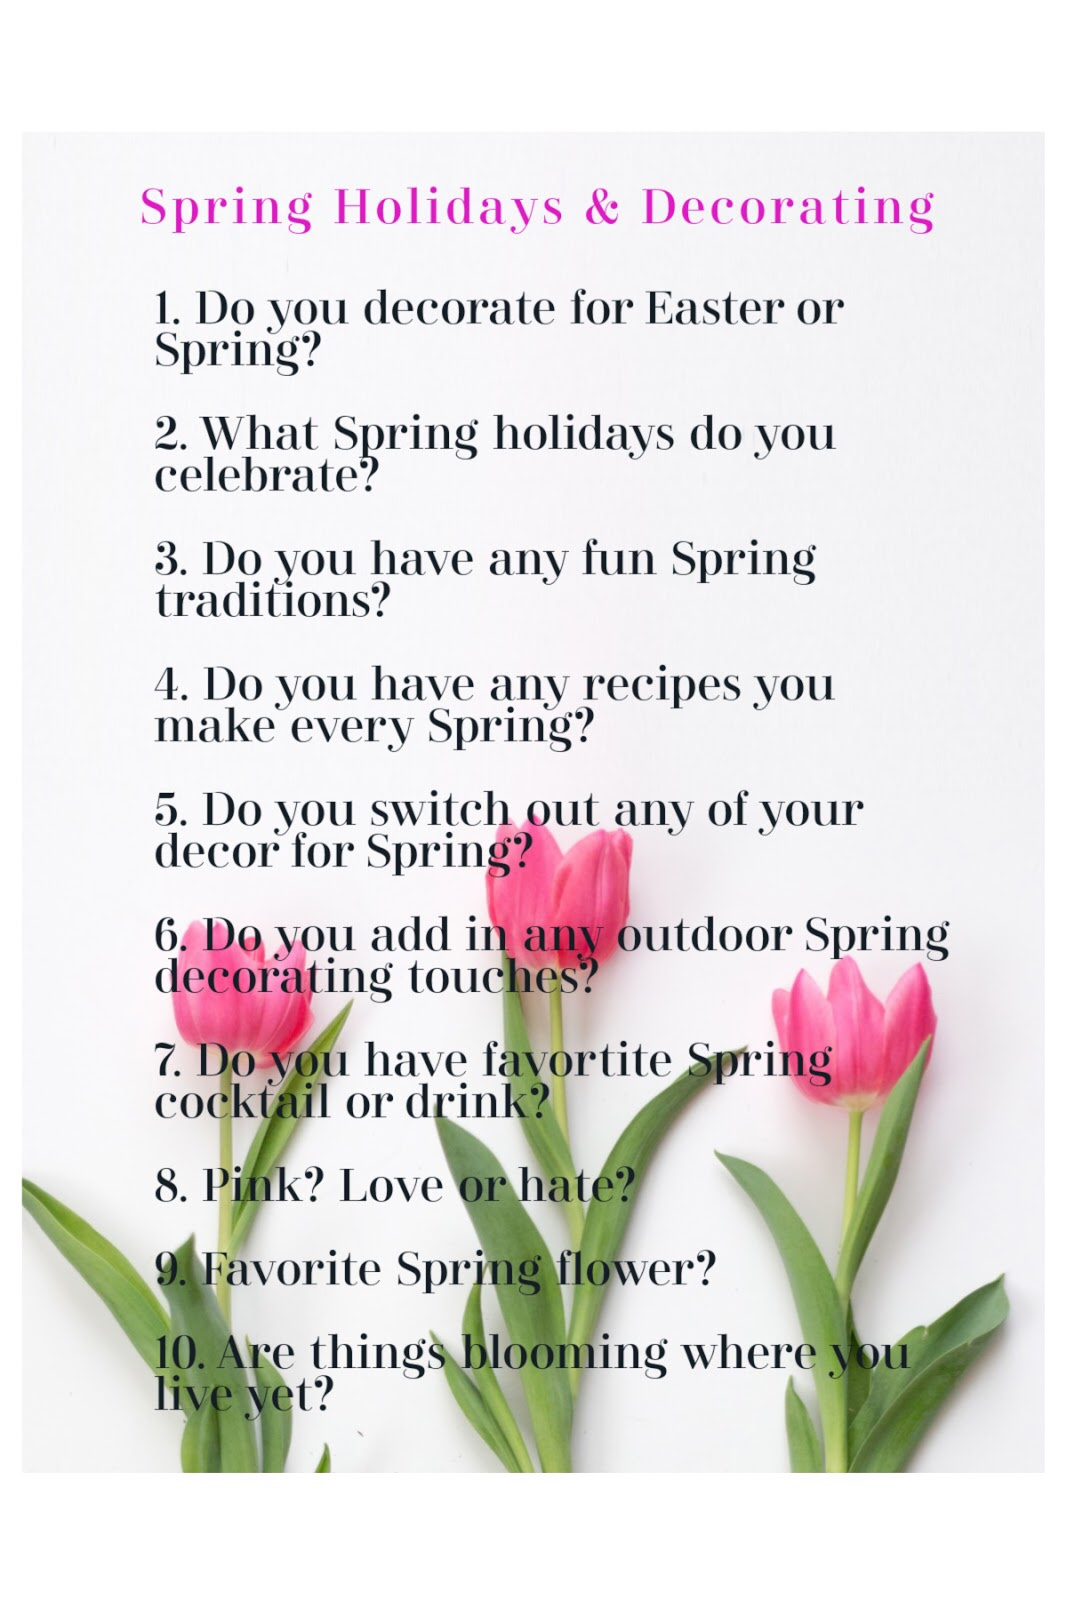 Spring Holidays & Decorating